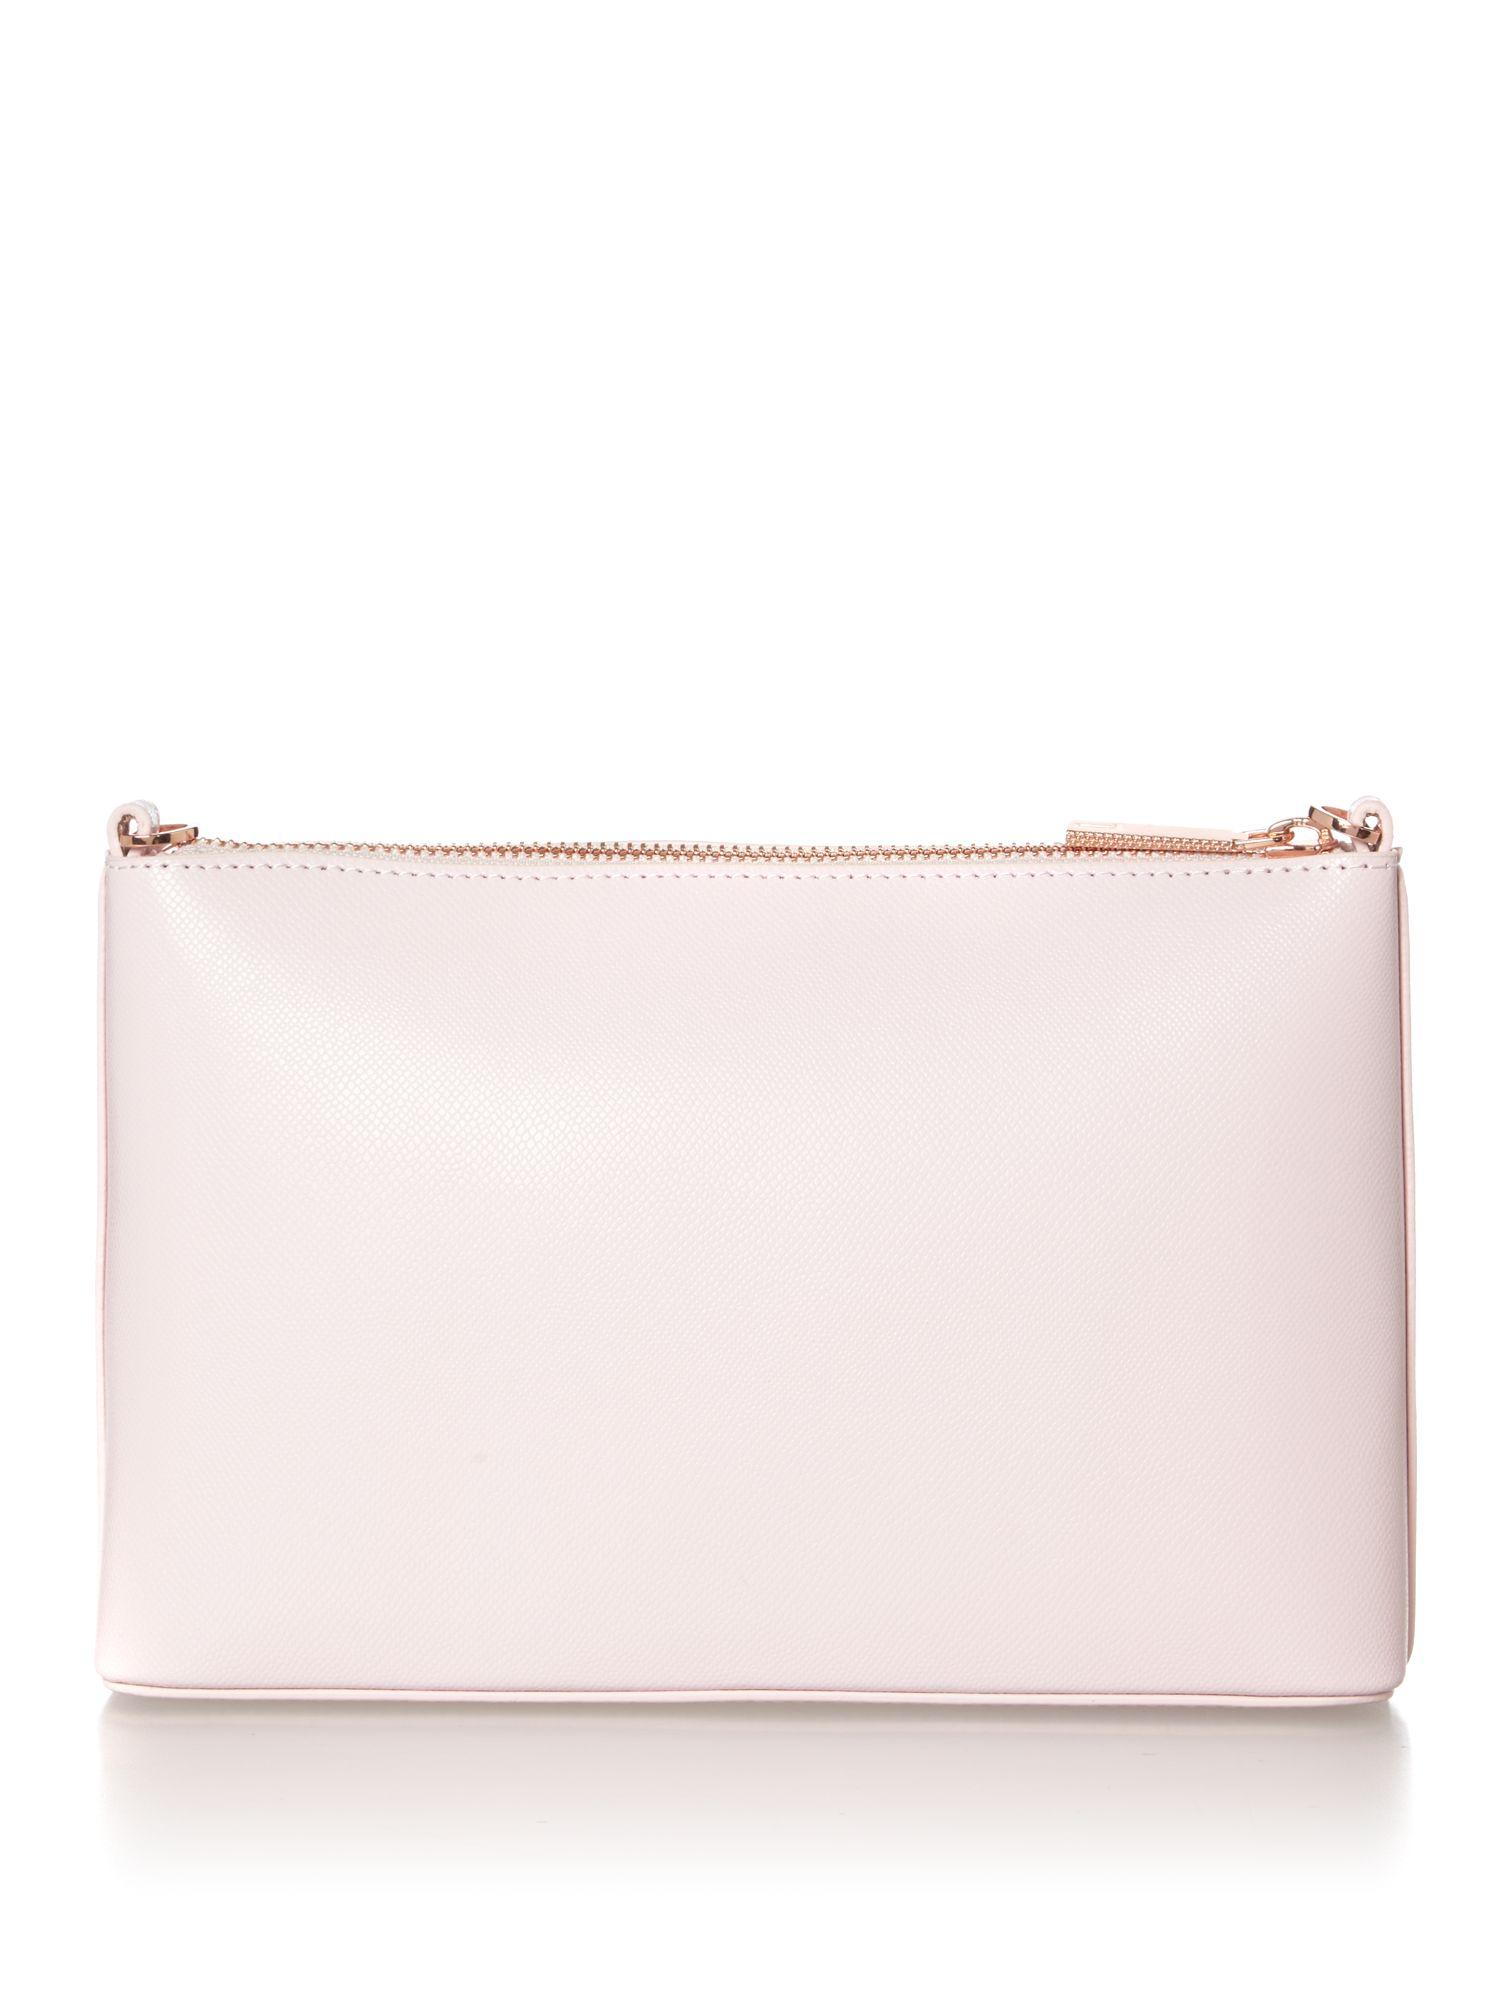 Lyst - Ted Baker Jazzi Floral Crossbody Bag In Pink